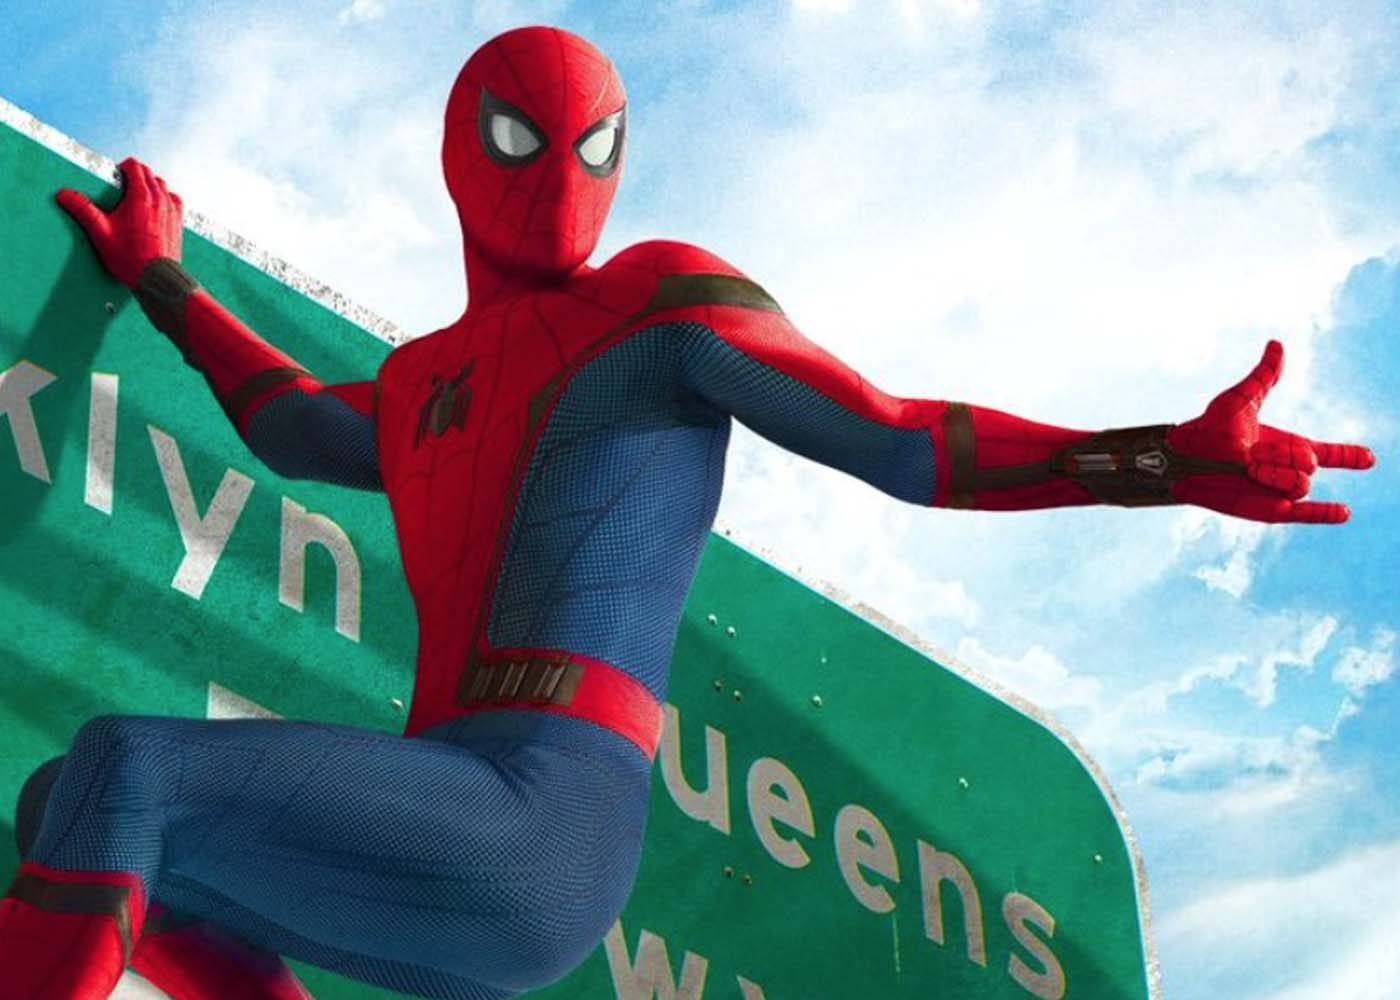 Spider-Man: Far from Home Set Photos Show Off New Alex Ross Inspired Suit